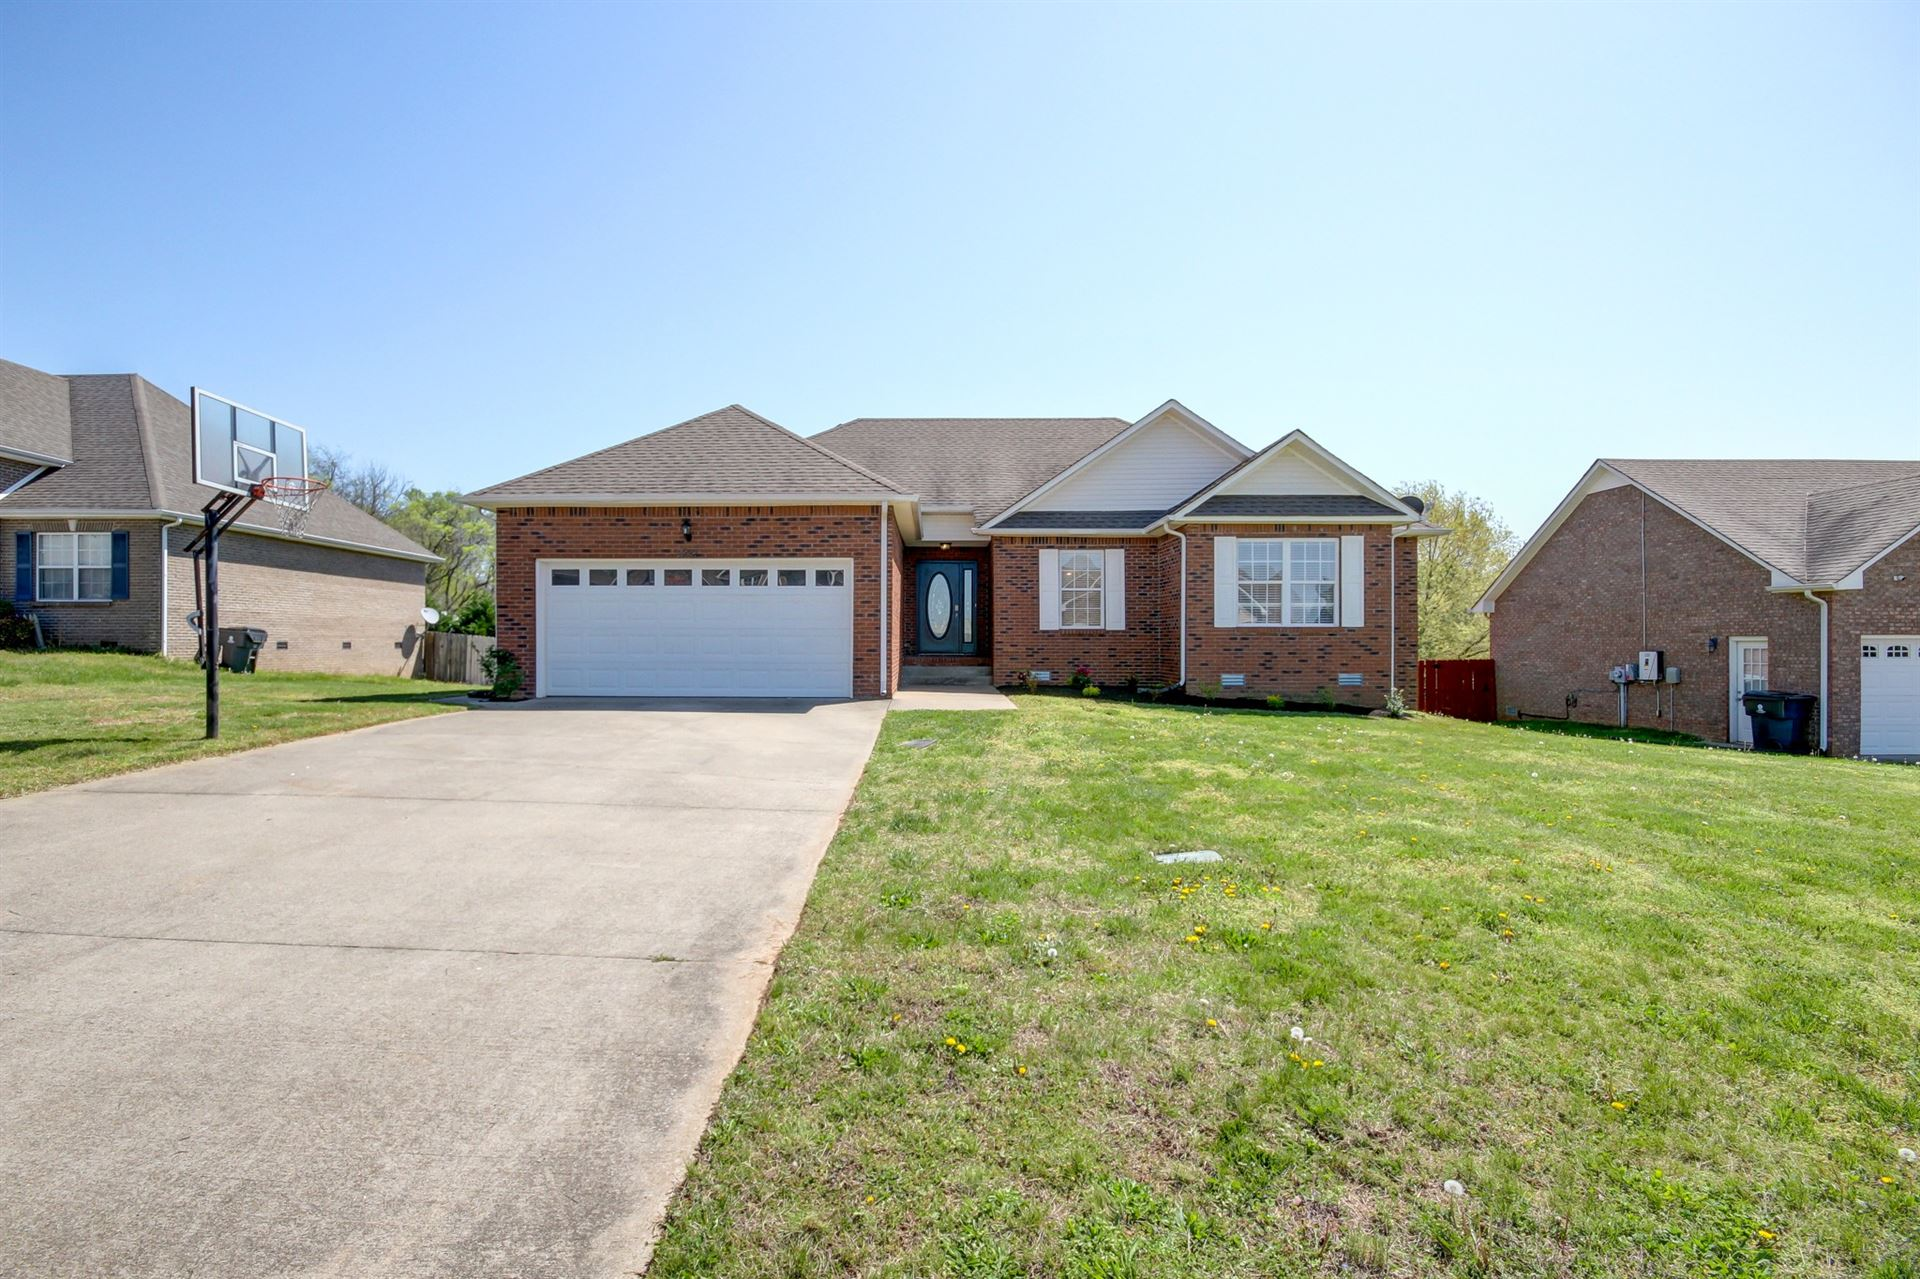 3287 Twelve Oaks Blvd, Clarksville, TN 37042 - MLS#: 2243279